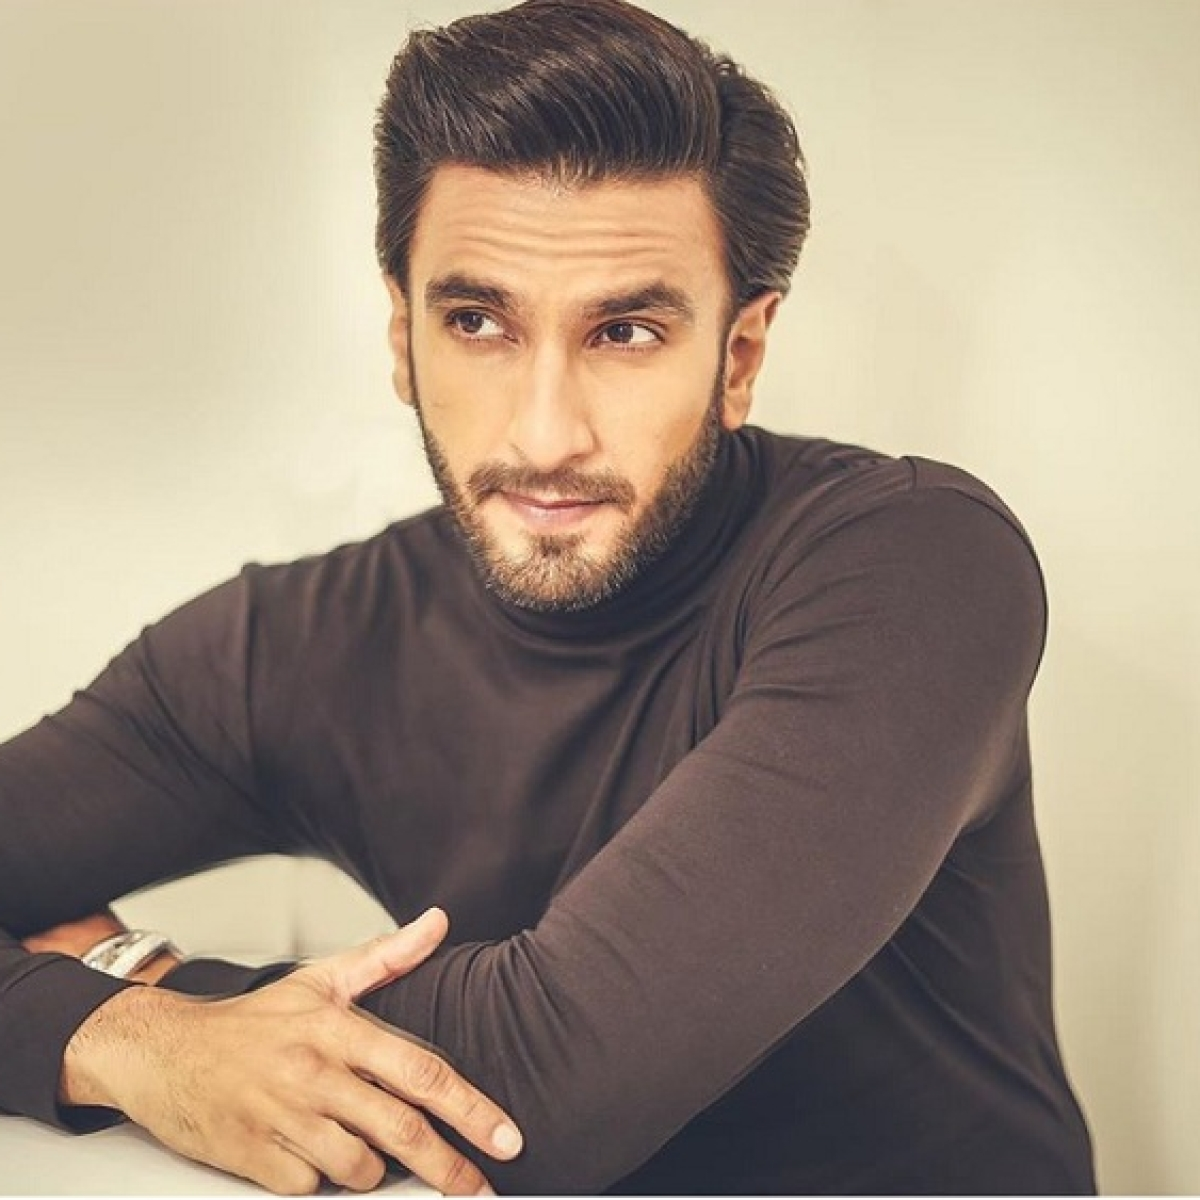 'I have been going through various phases,' says Ranveer Singh on how the pandemic has impacted him